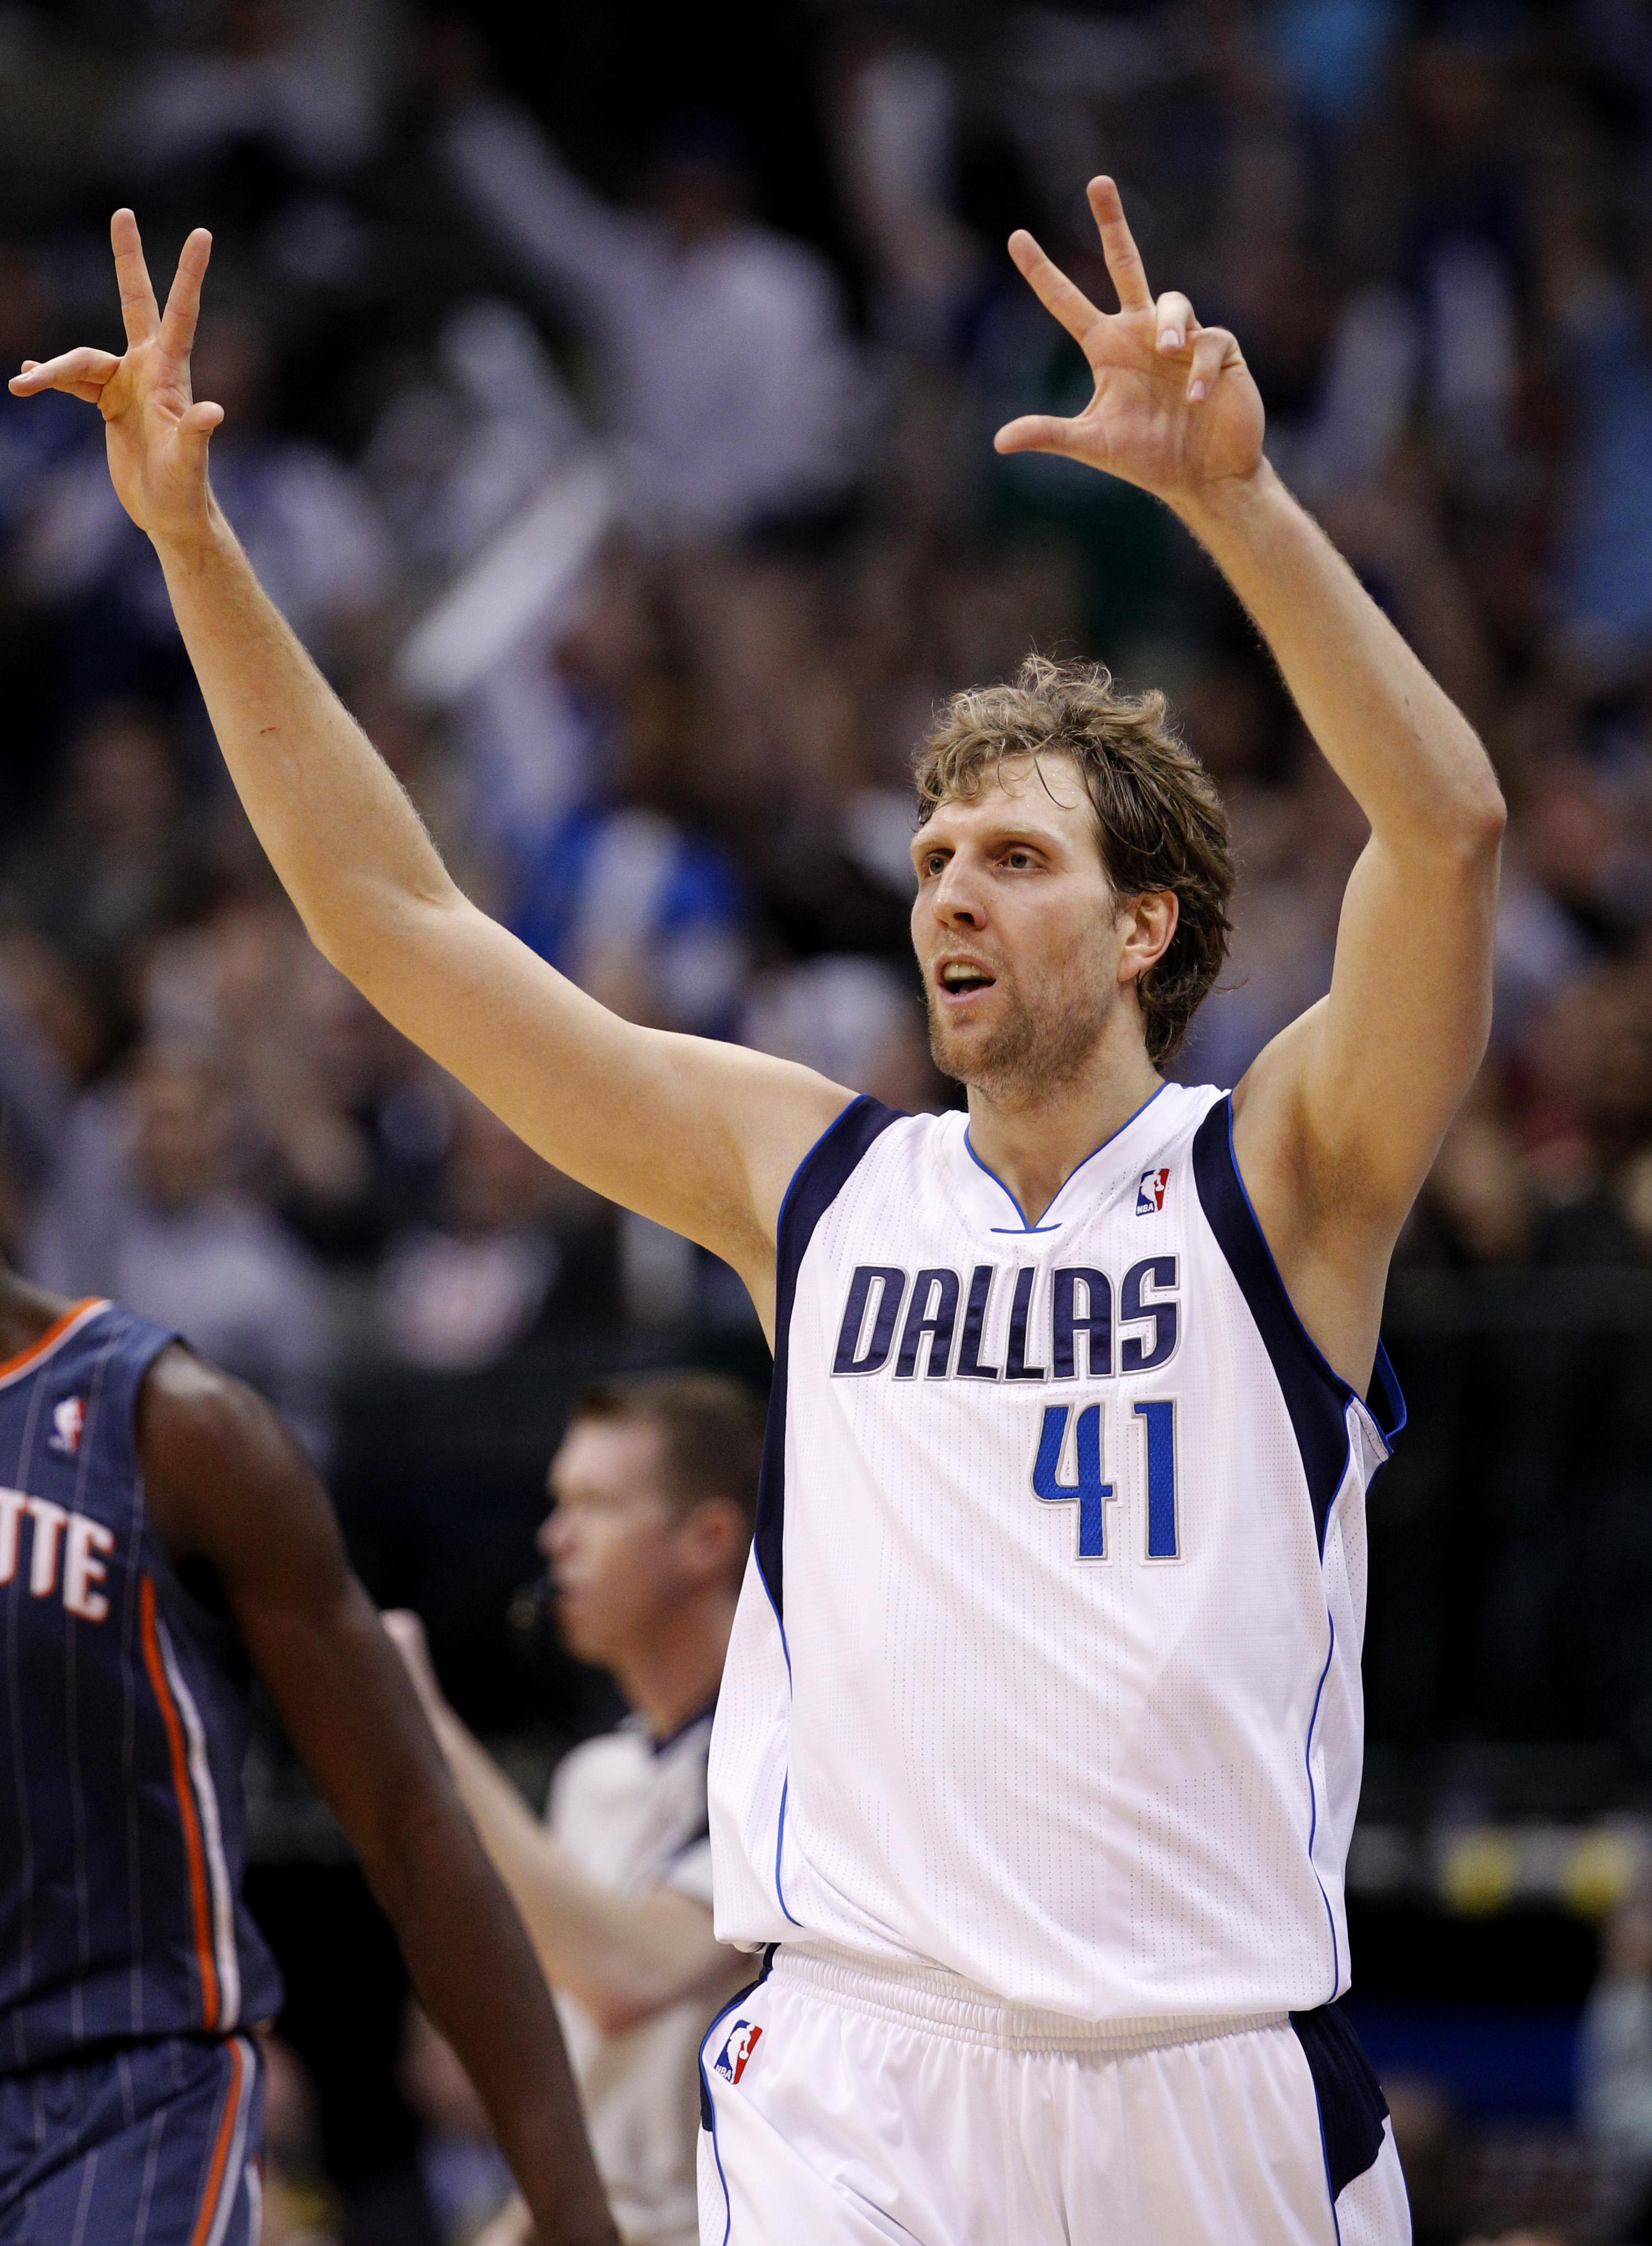 Digest Mavs have deal with Dirk Nowitzki will add Seth Curry